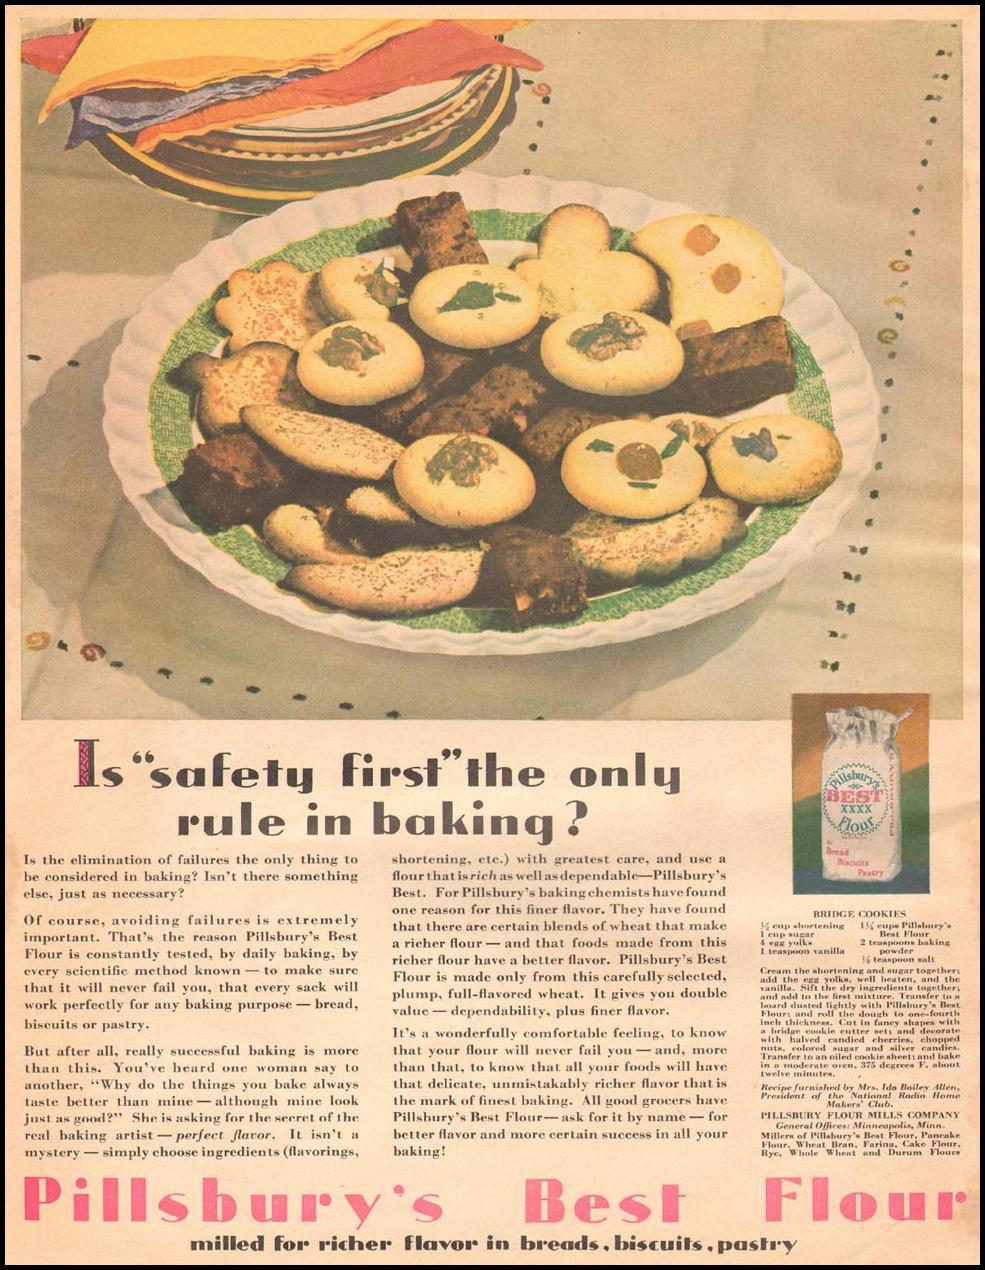 PILLSBURY'S BEST FLOUR THE HOME MAGAZINE 04/01/1930 BACK COVER